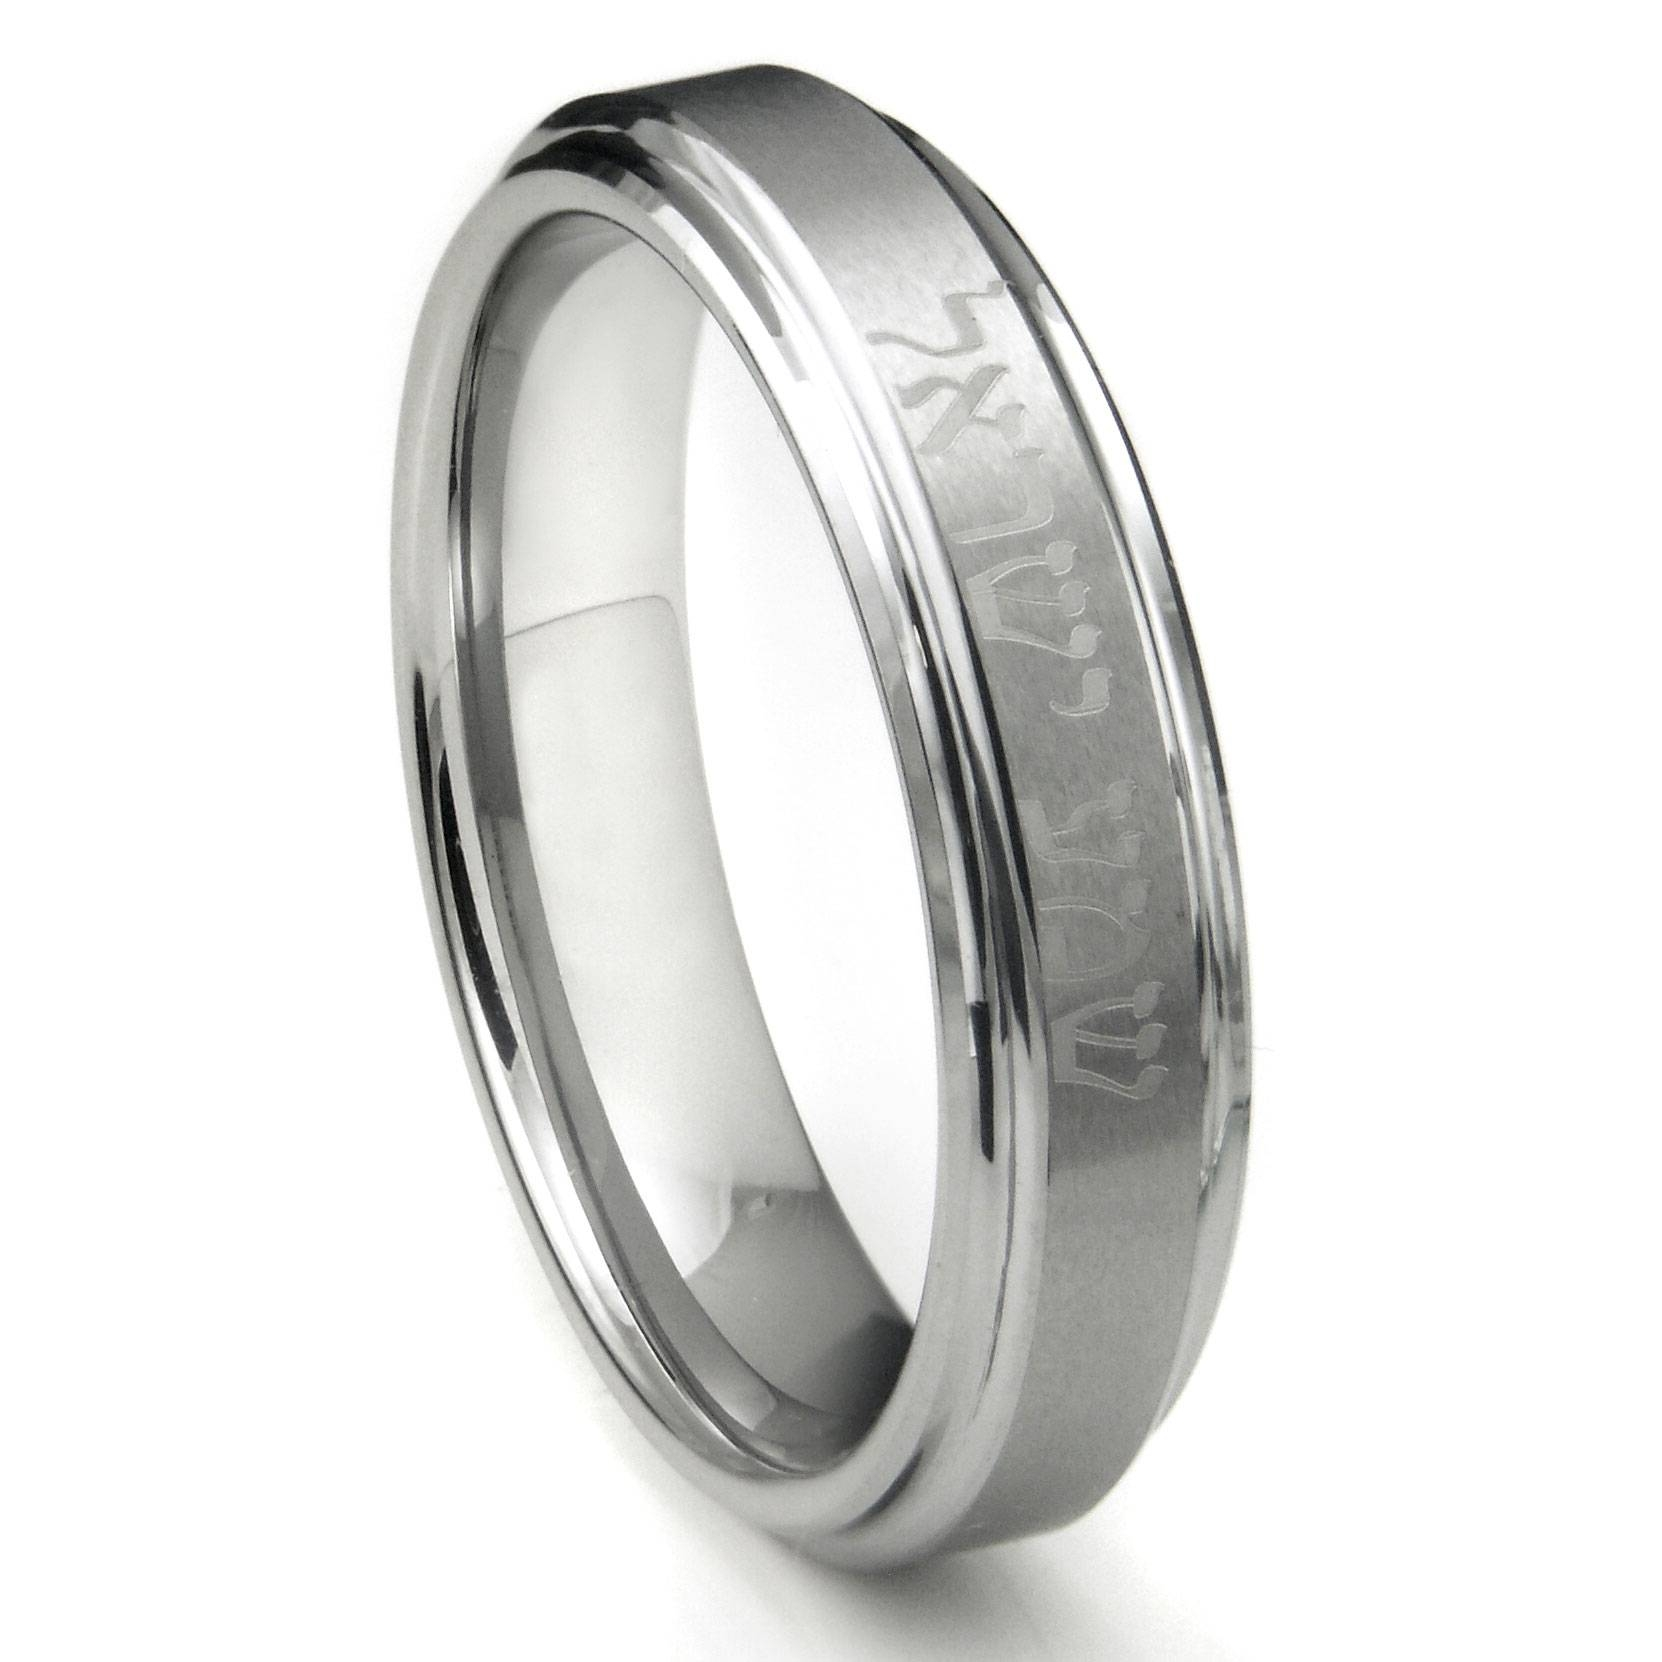 Wedding Rings : Engravable Wedding Bands For Him Engravable Within Engravable Men's Wedding Bands (View 9 of 15)